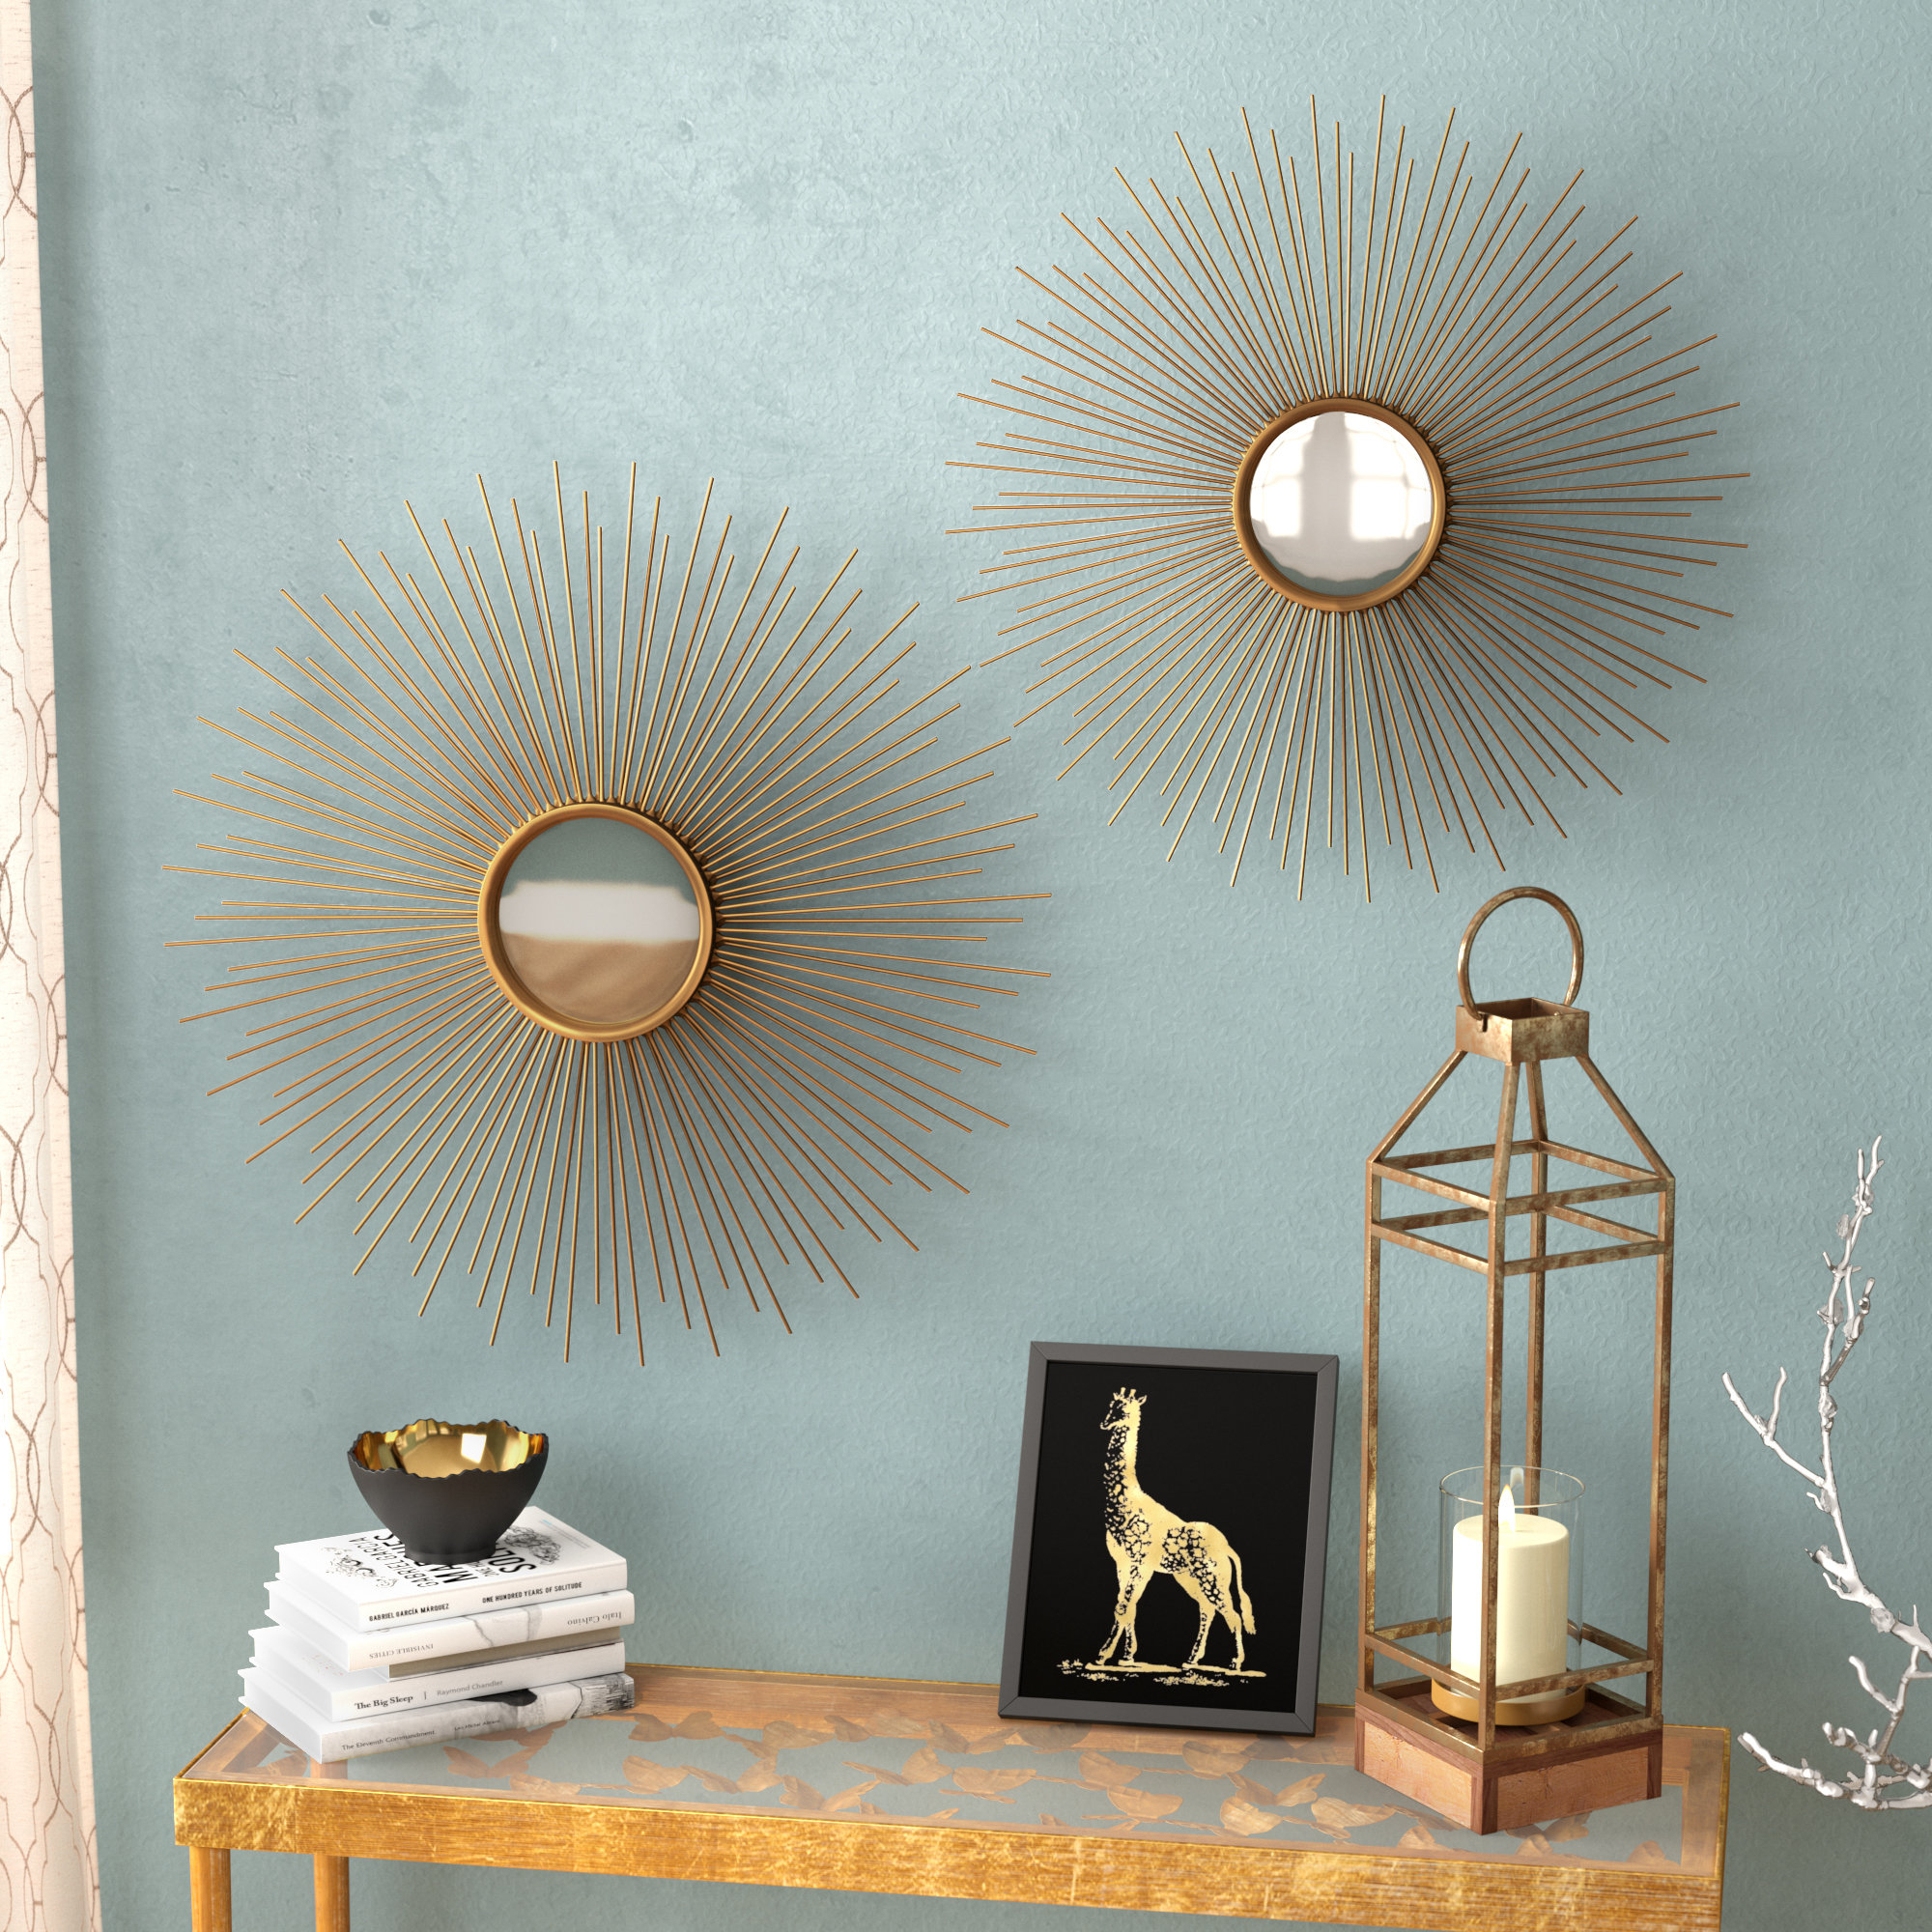 Sunburst Wall Mirrors You'll Love In 2019 | Wayfair Inside Orion Starburst Wall Mirrors (Image 16 of 20)